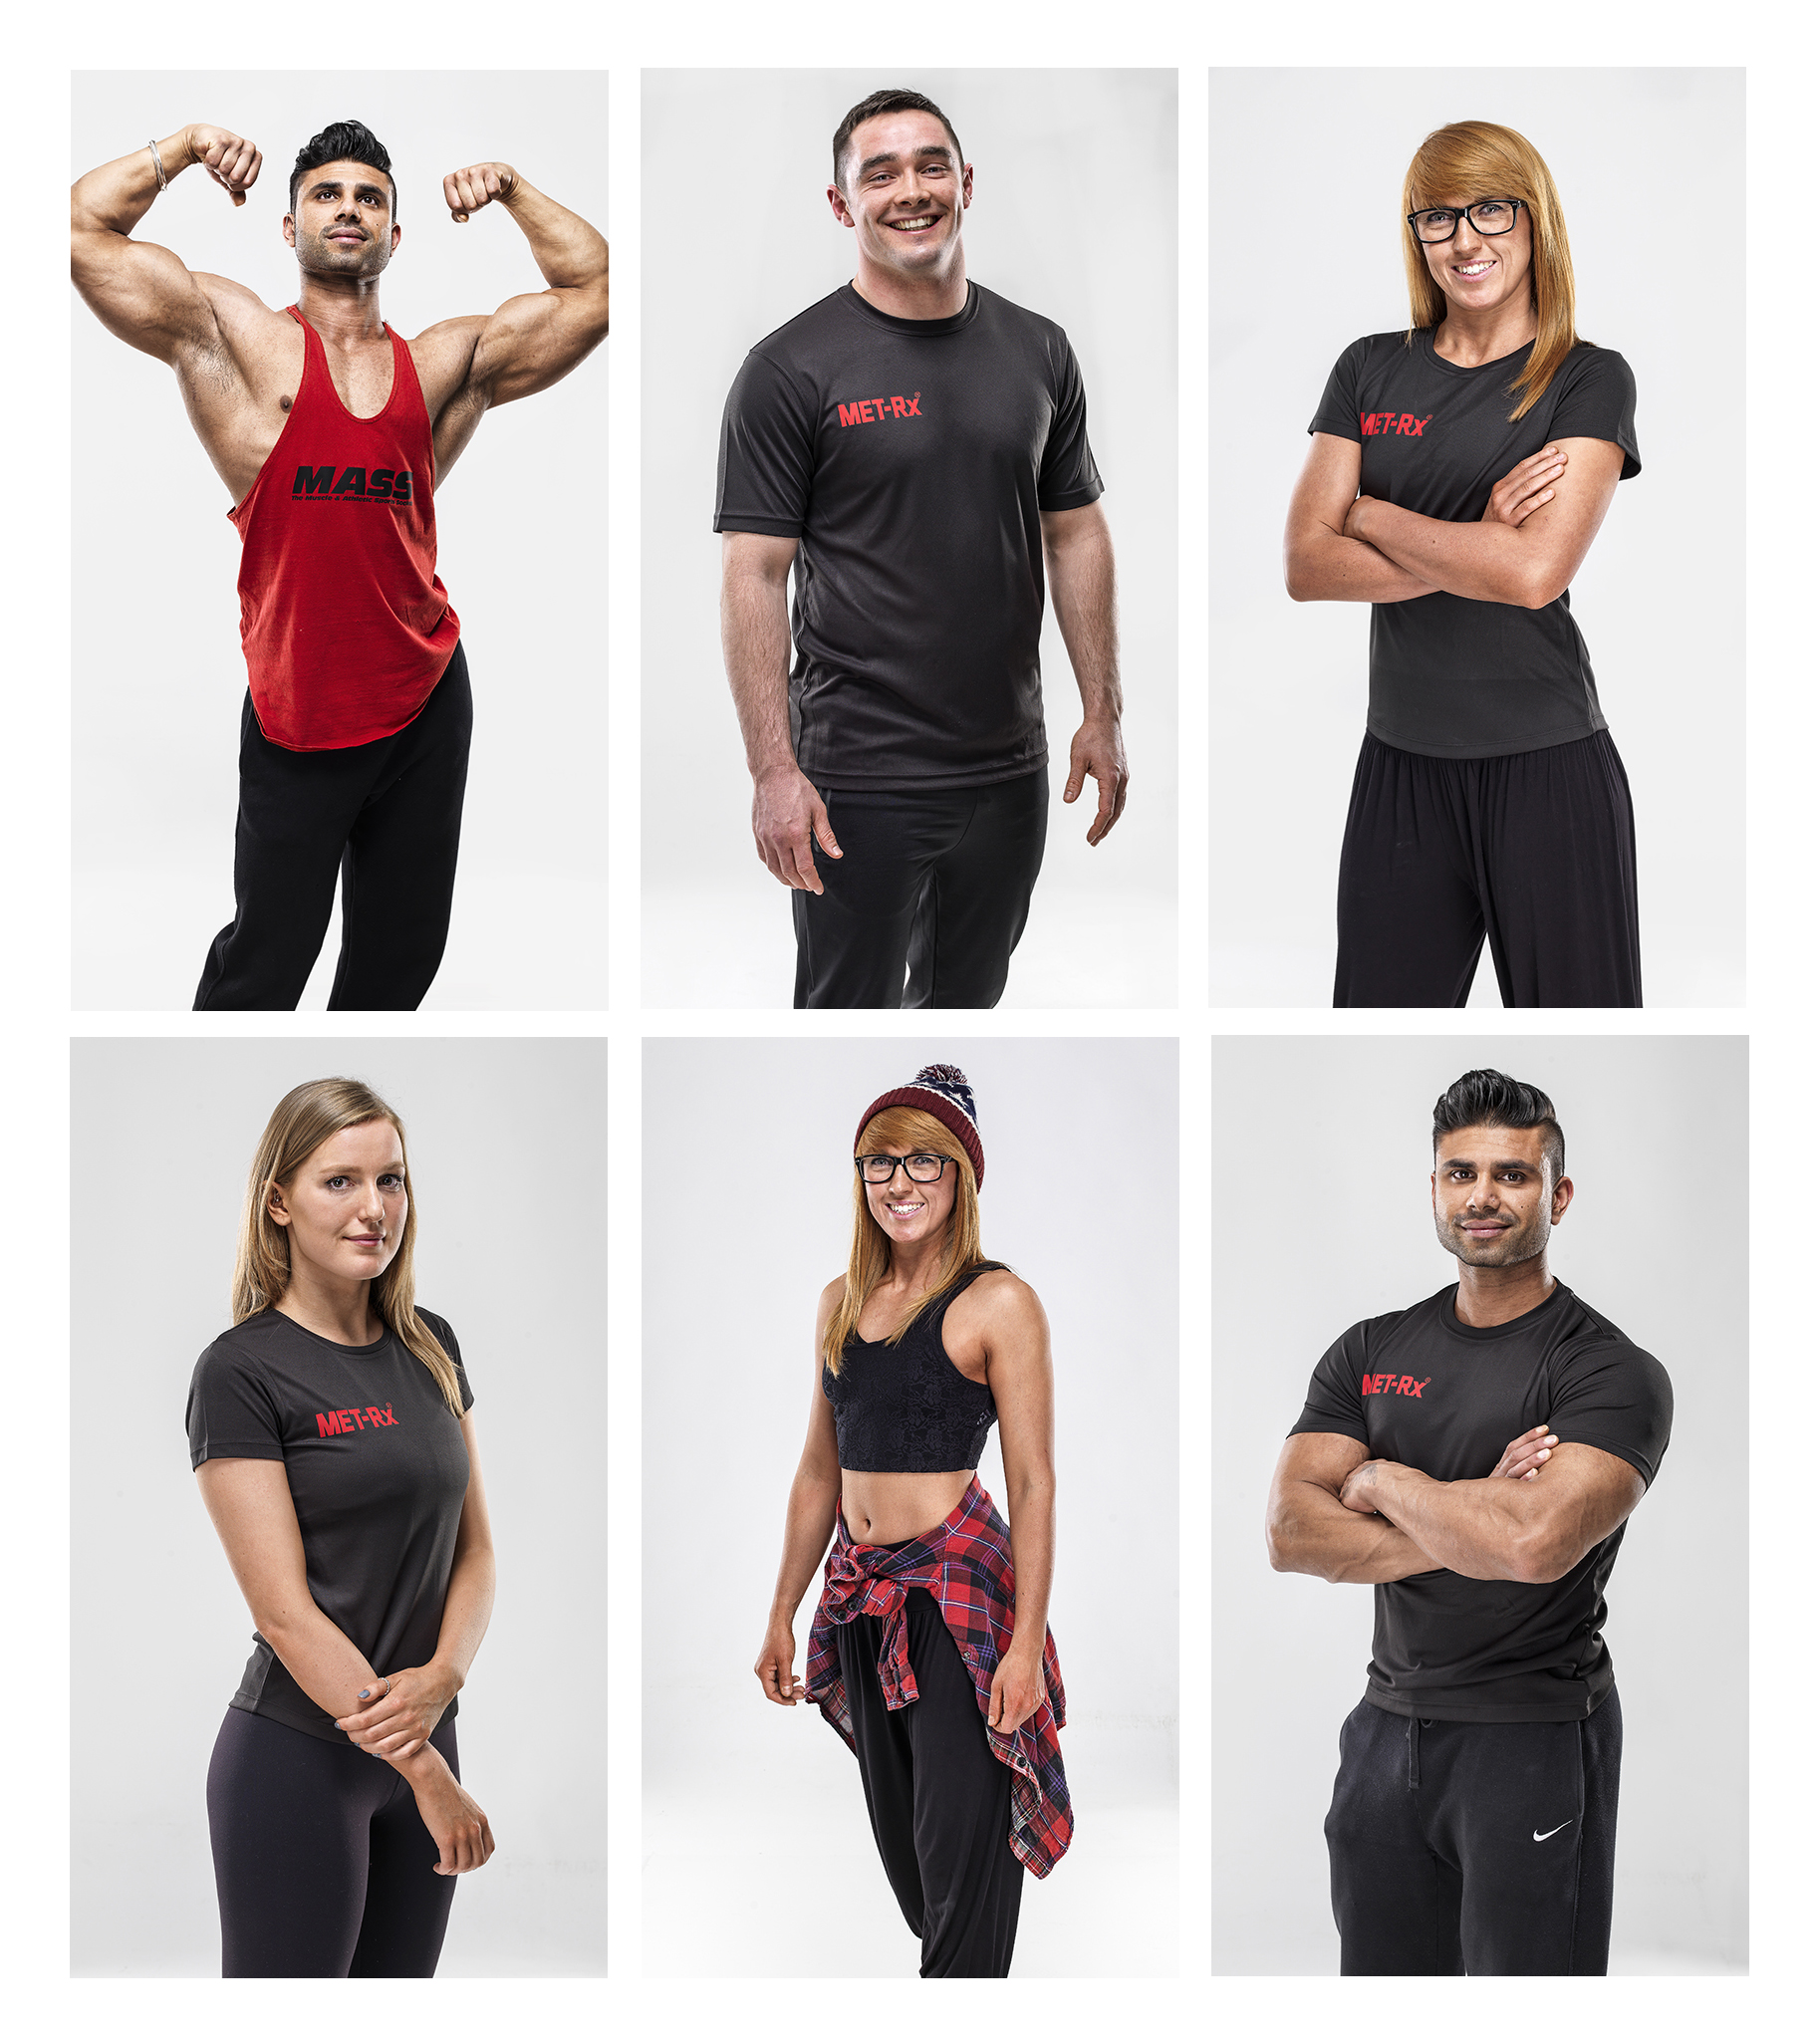 Fitness and sport image for Met Rx studio photography by Ross vincent